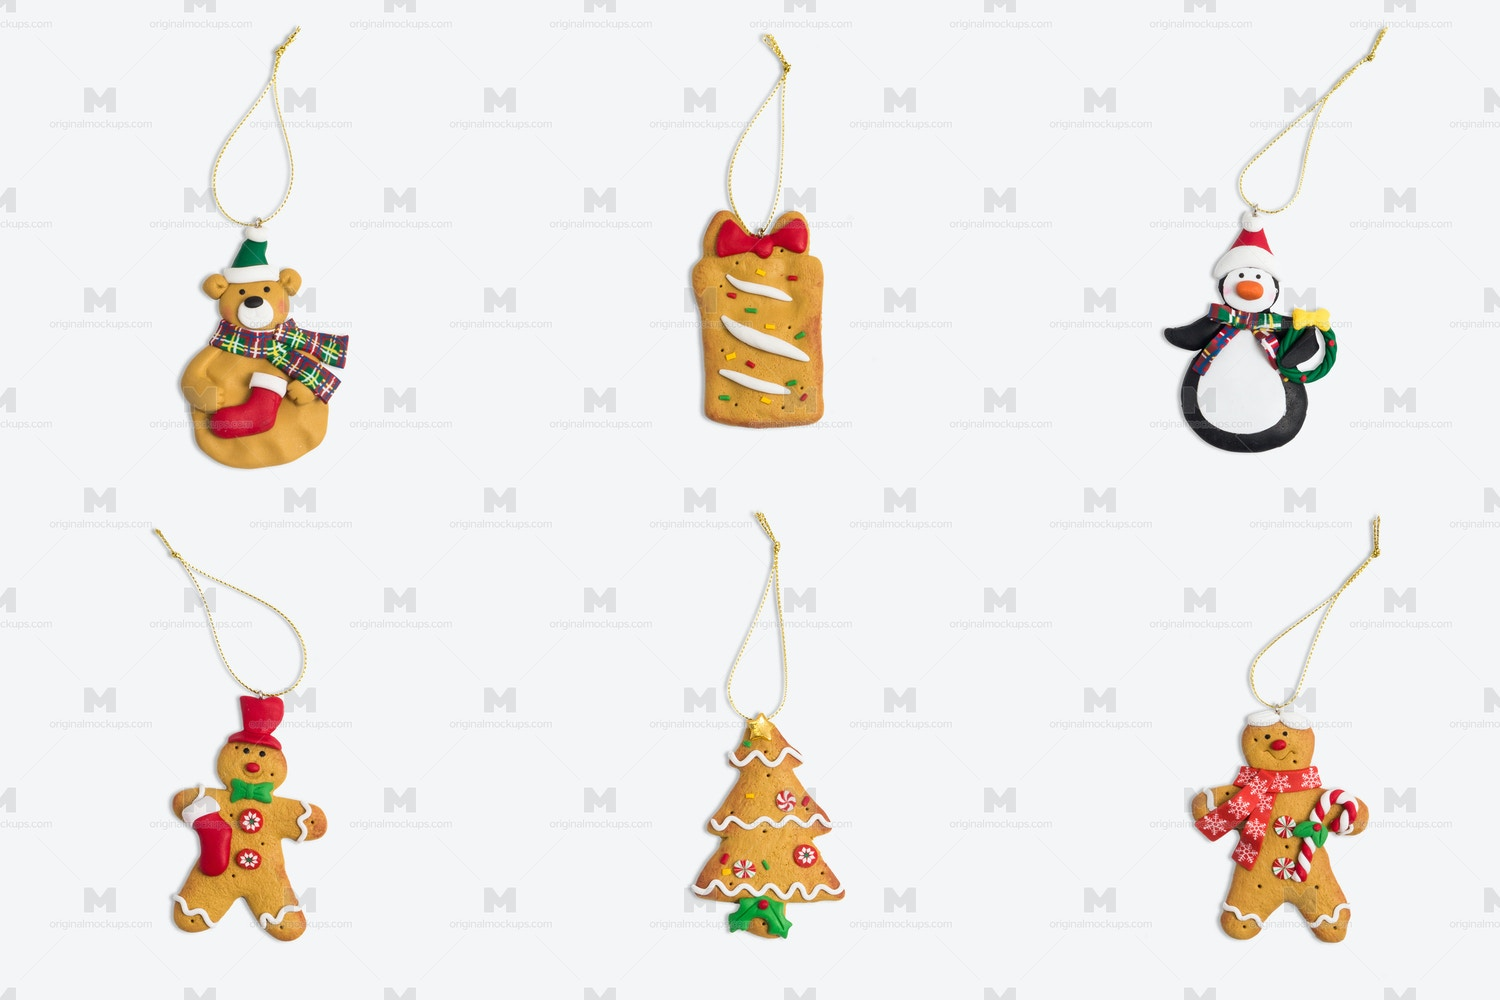 Christmas Decor Isolate Objects 02 por Original Mockups en Original Mockups